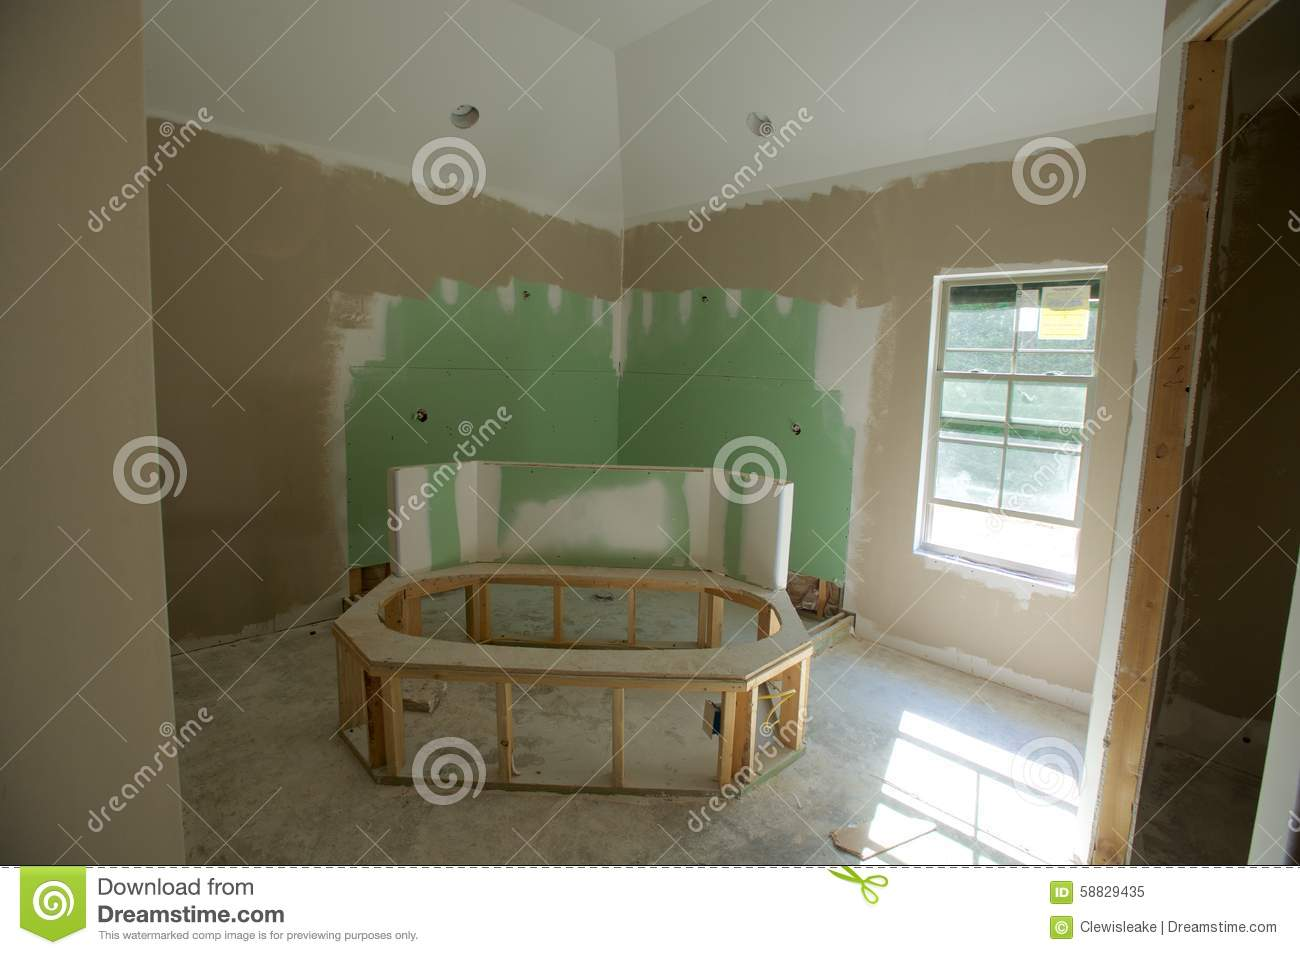 Home Bathroom Remodeling Project Stock Photo Image 58829435